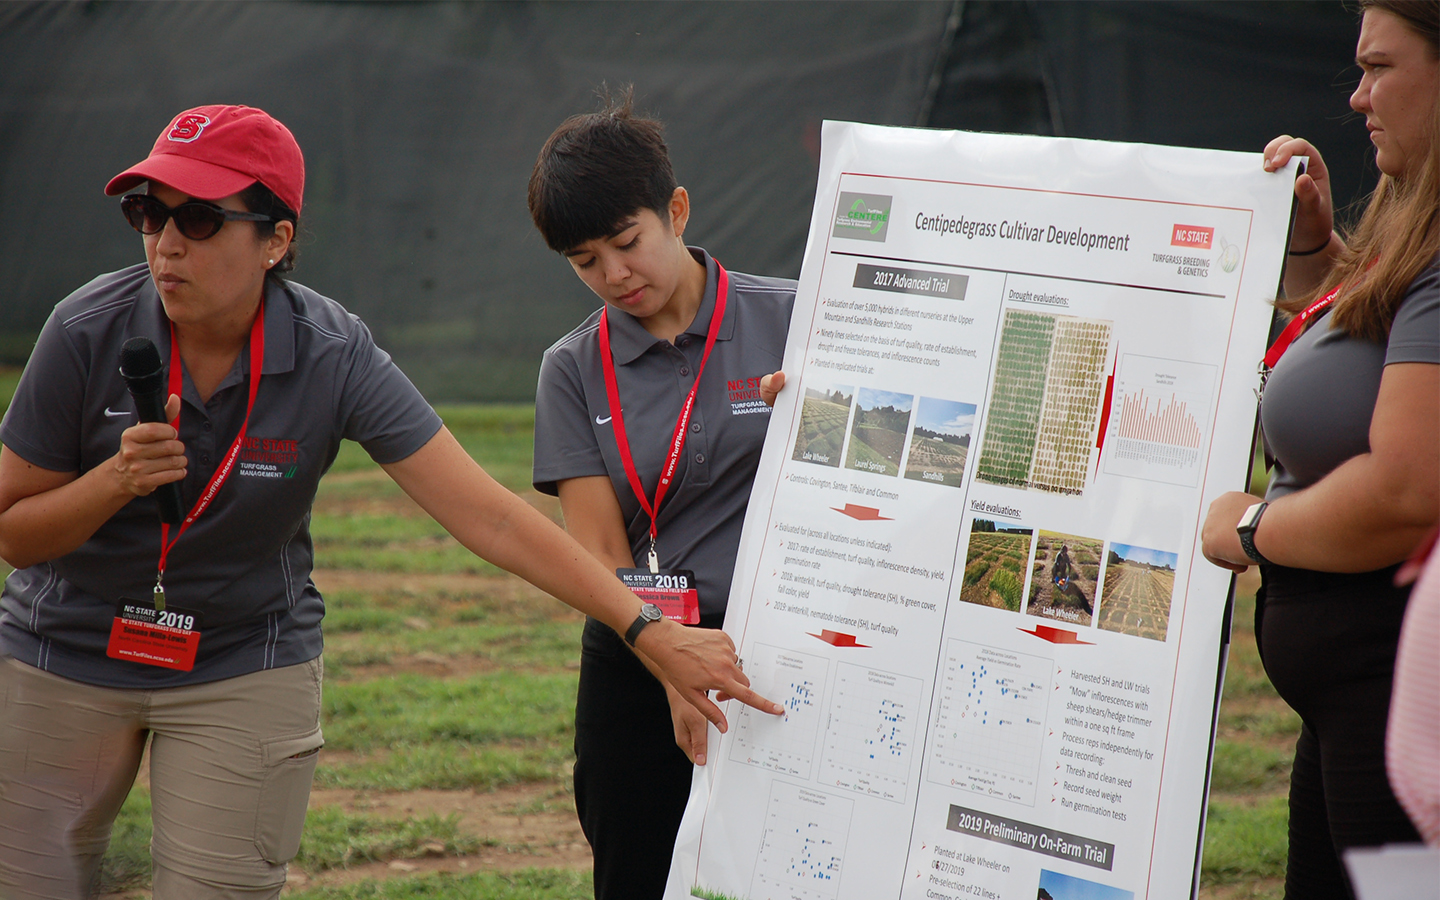 NC State Faculty present turfgrass research at field day